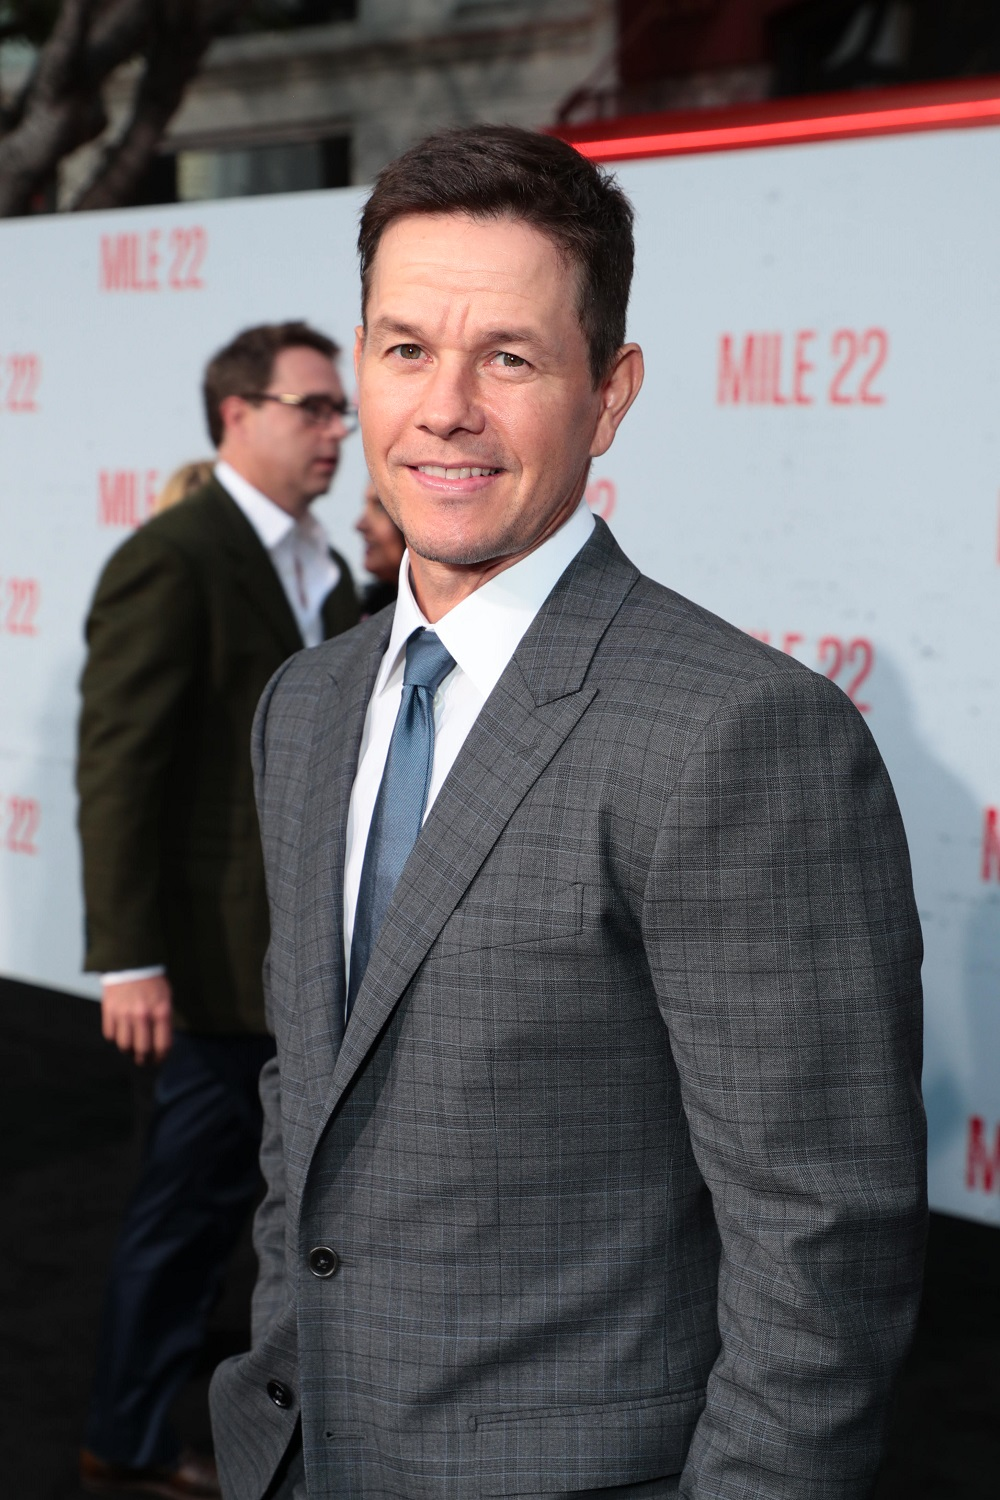 Mark Wahlberg attends STXfilms' MILE 22 premiere at Westwood Village Theater in Los Angeles, CA.